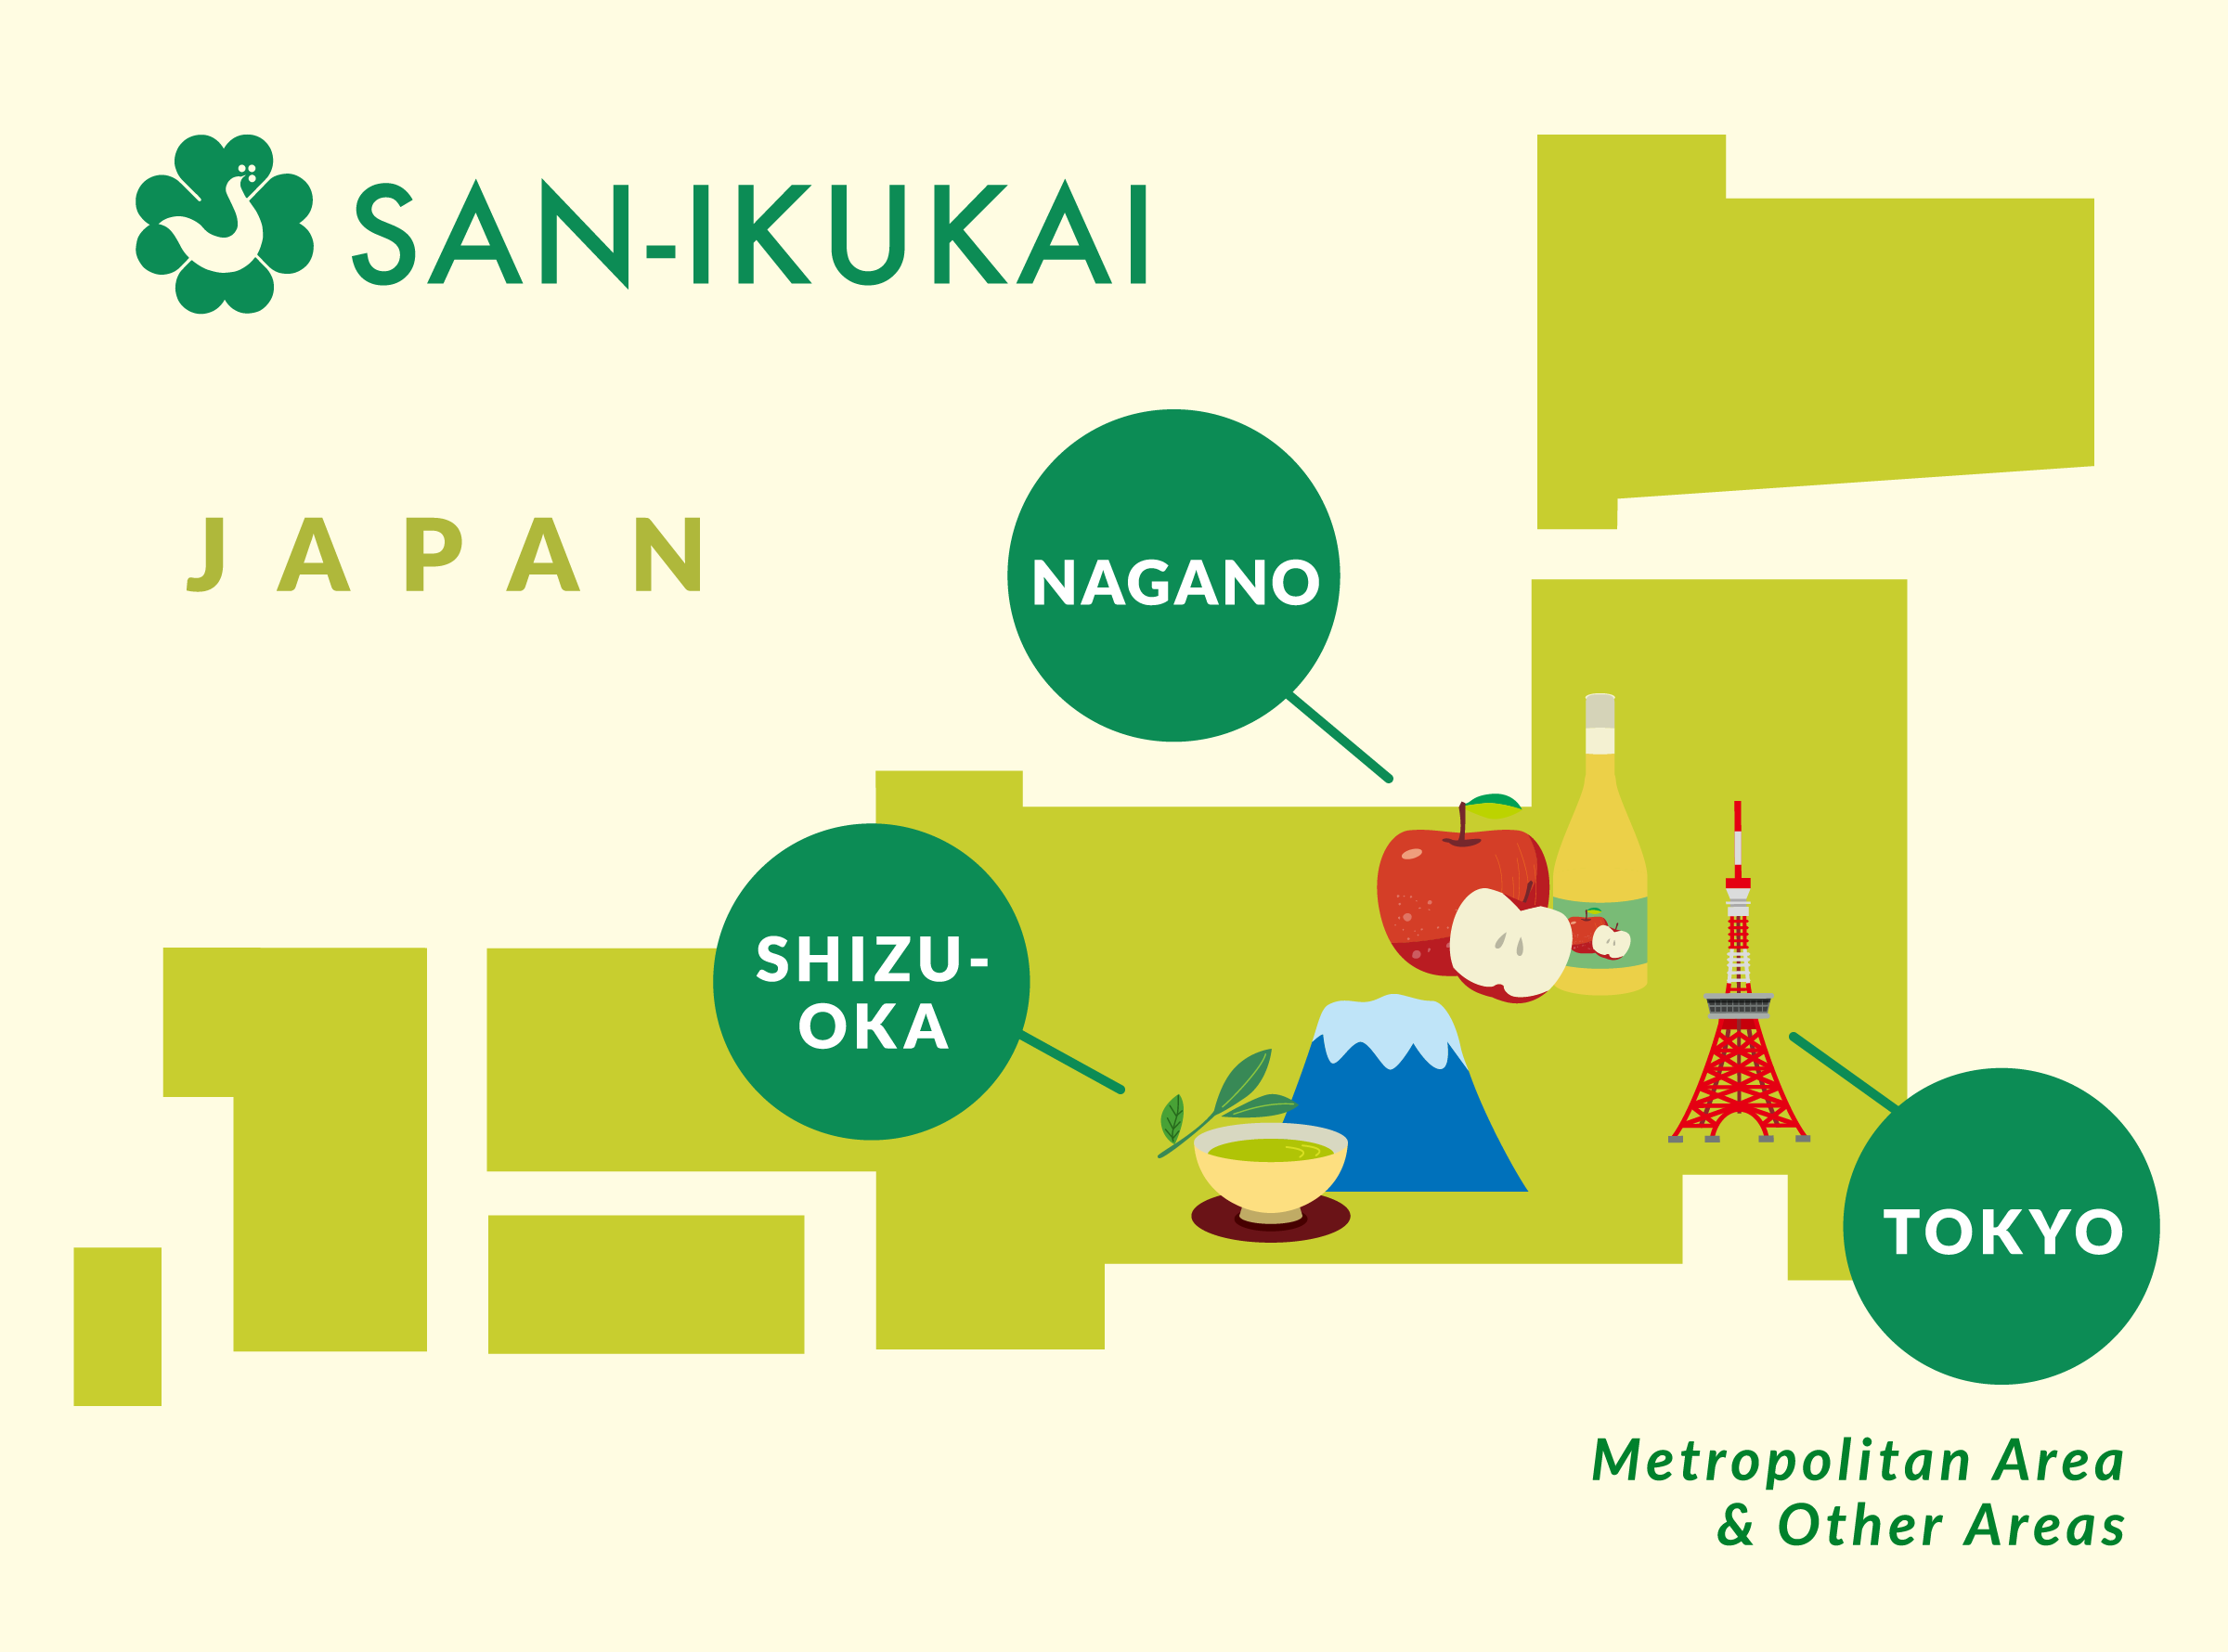 Map of San-ikukai offices in Japan